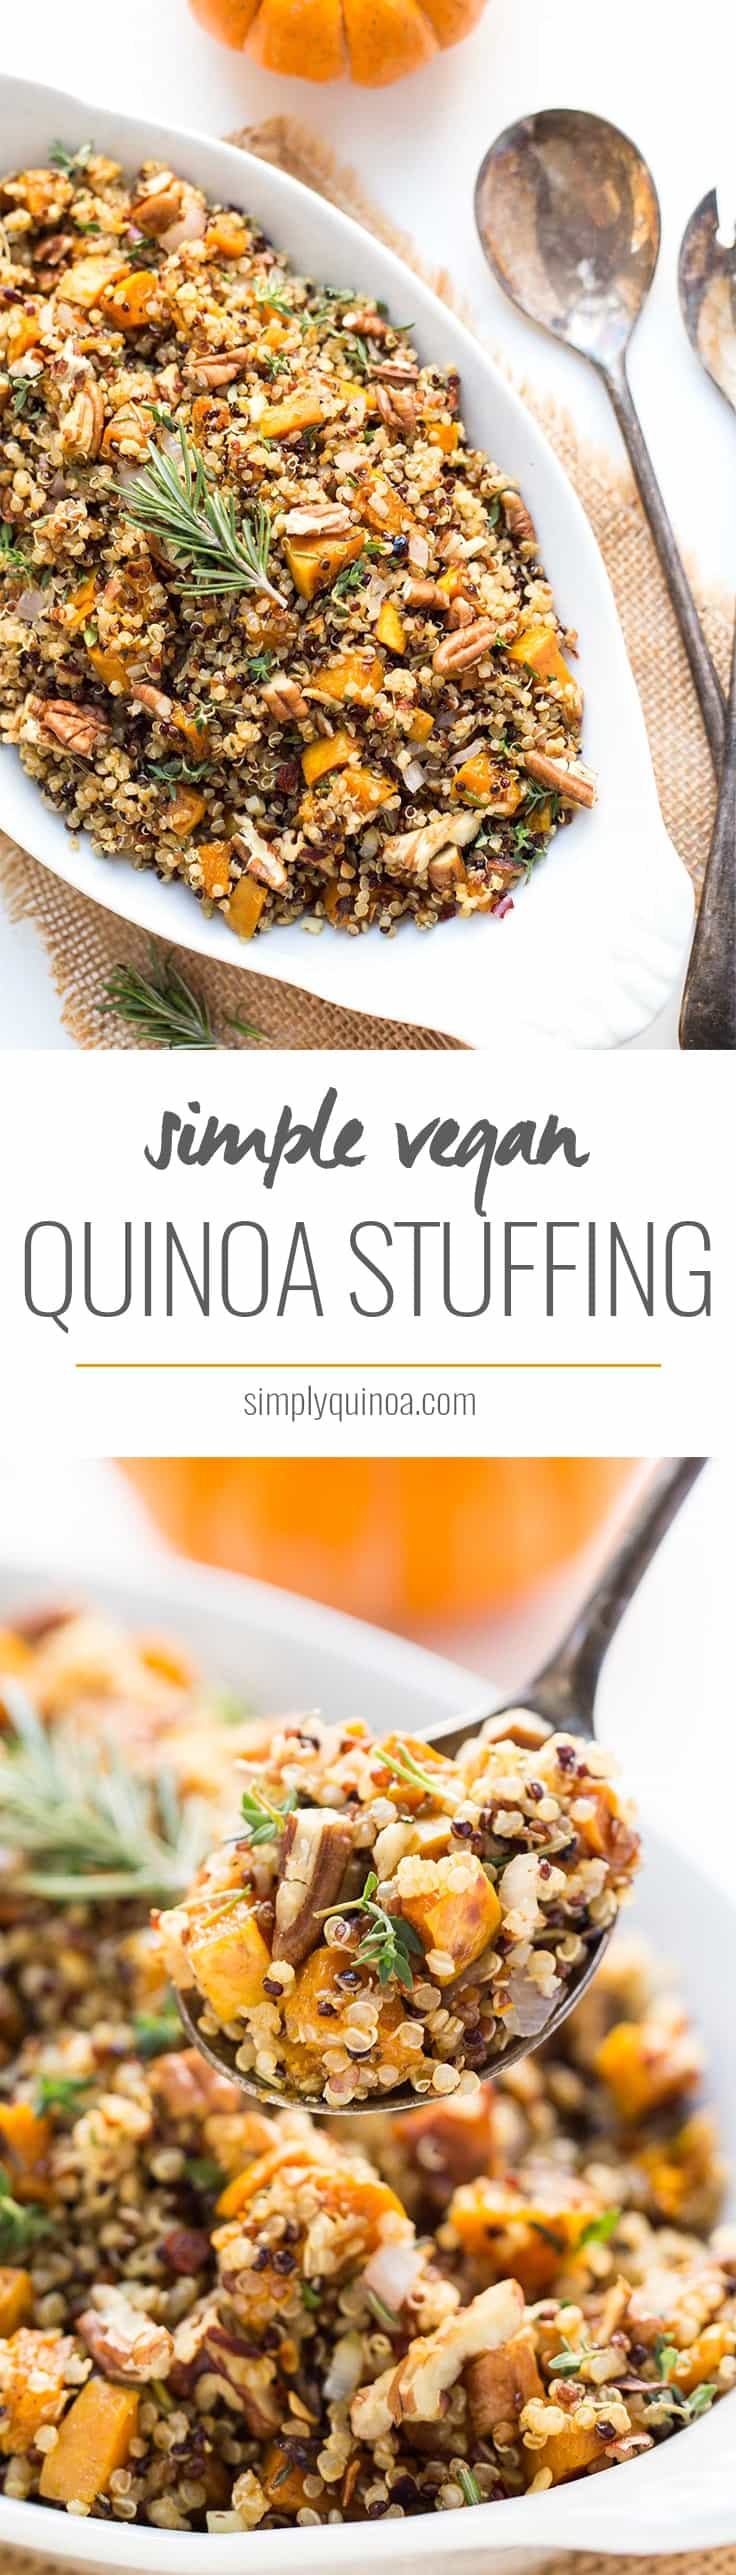 Have a healthy Thanksgiving this year by serving this super SIMPLE Quinoa Stuffing recipe instead of the traditional bread-based one!